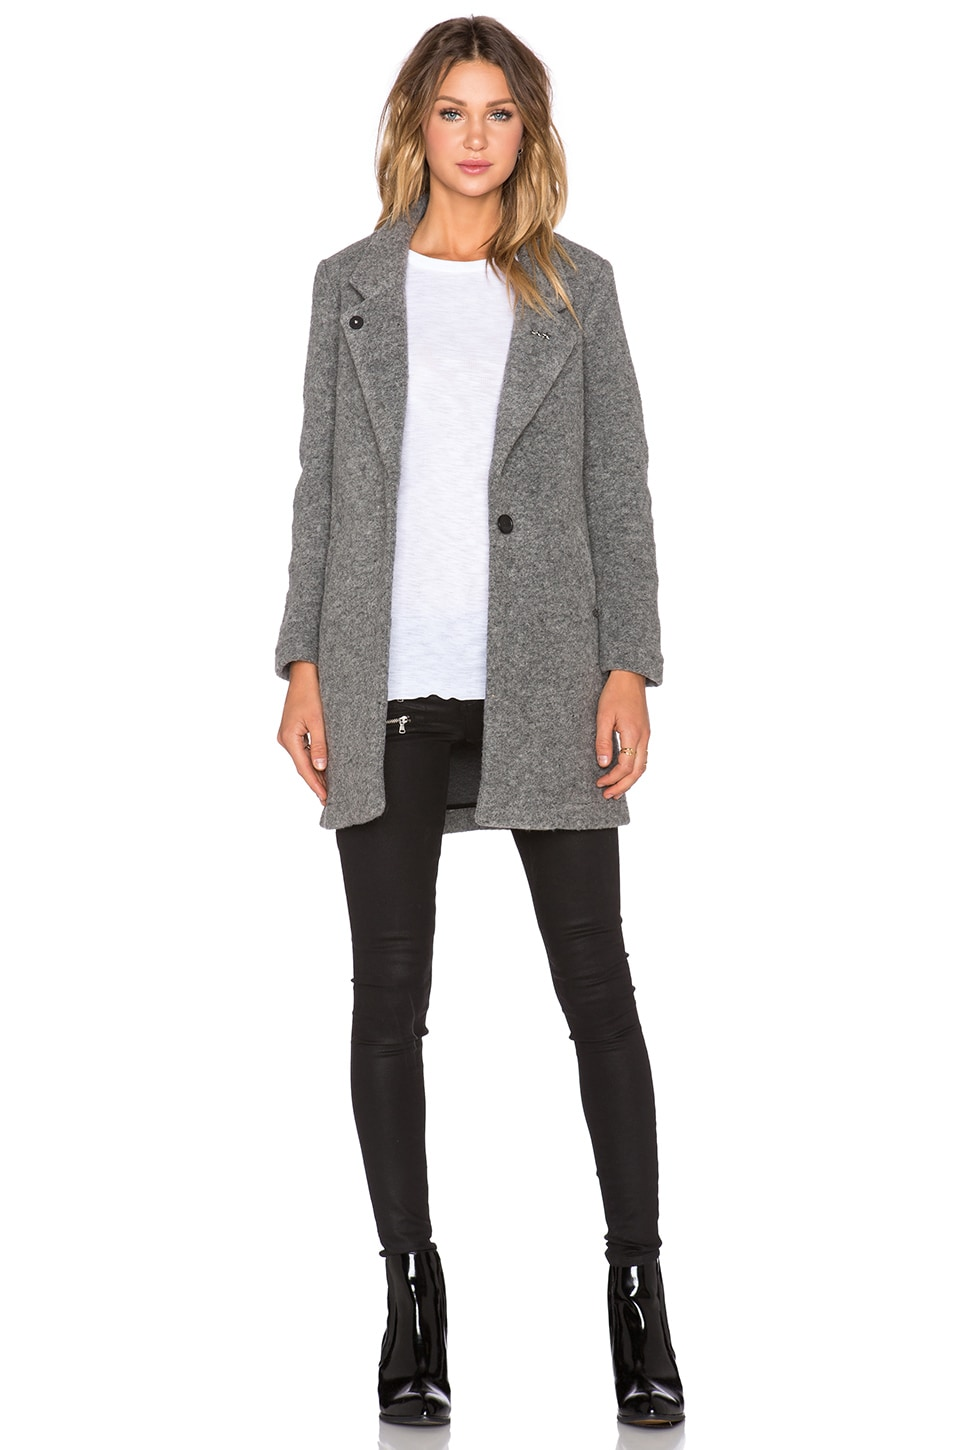 Maison Scotch Tailored Coat in Heather Grey